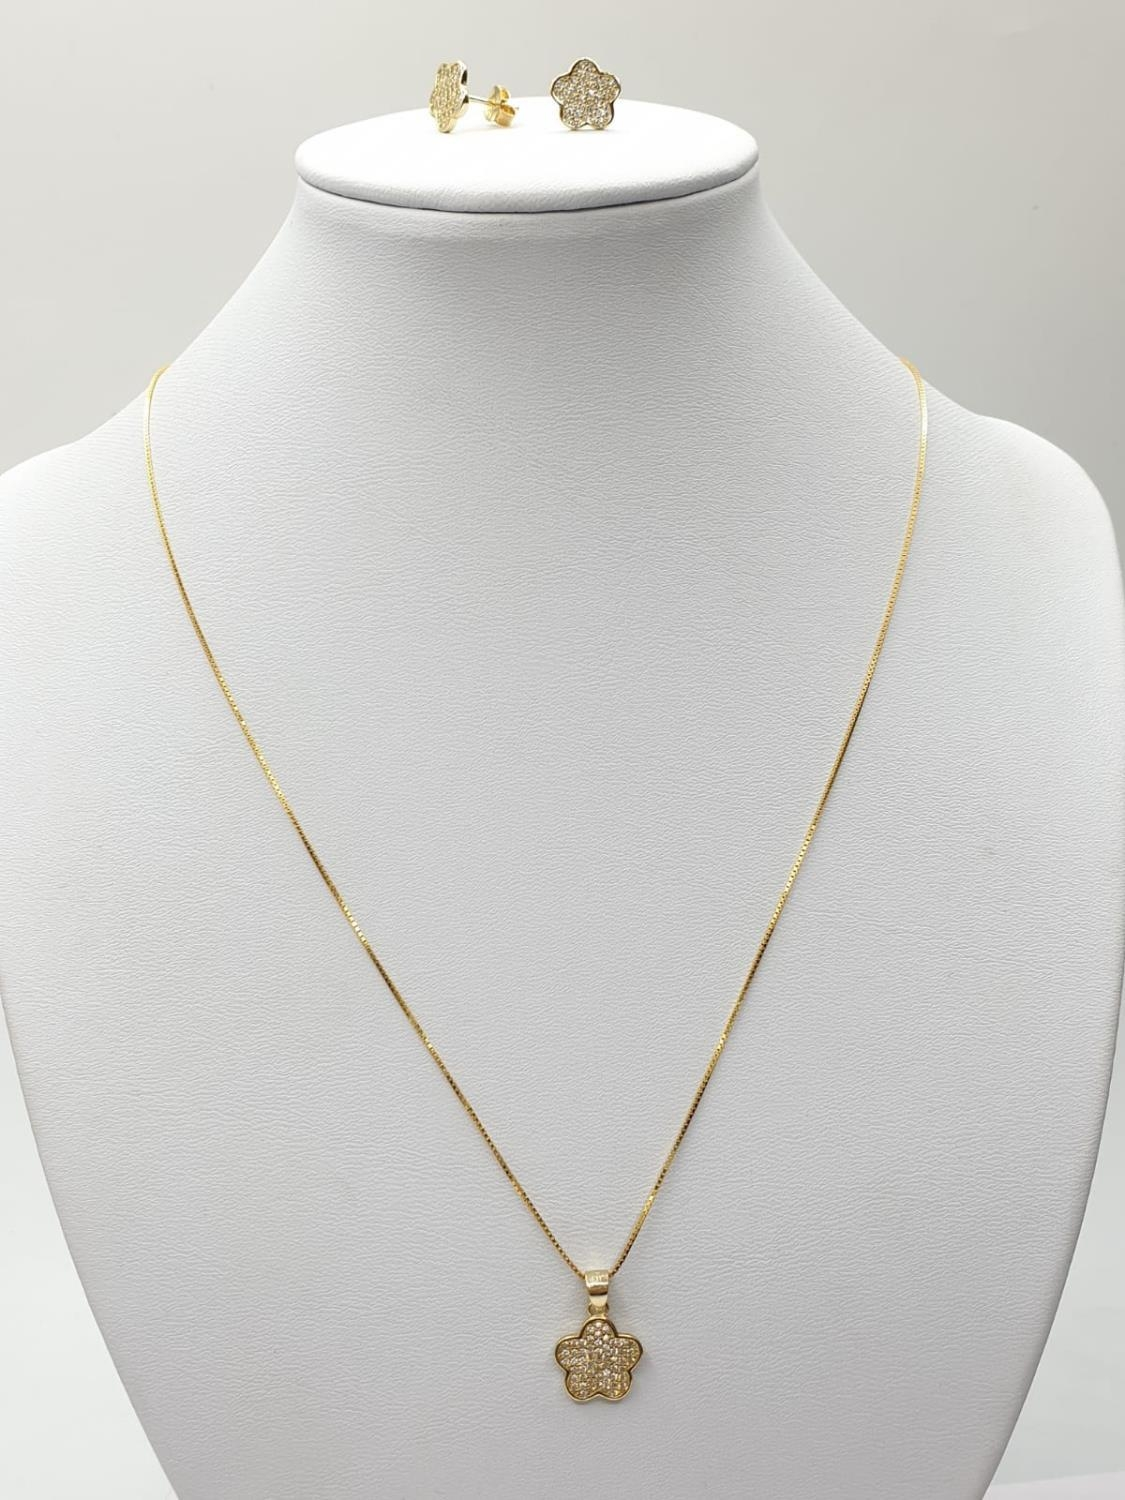 Gold plated silver set of PENDANT and matching EARRINGS. 3.7g 40cm chain.